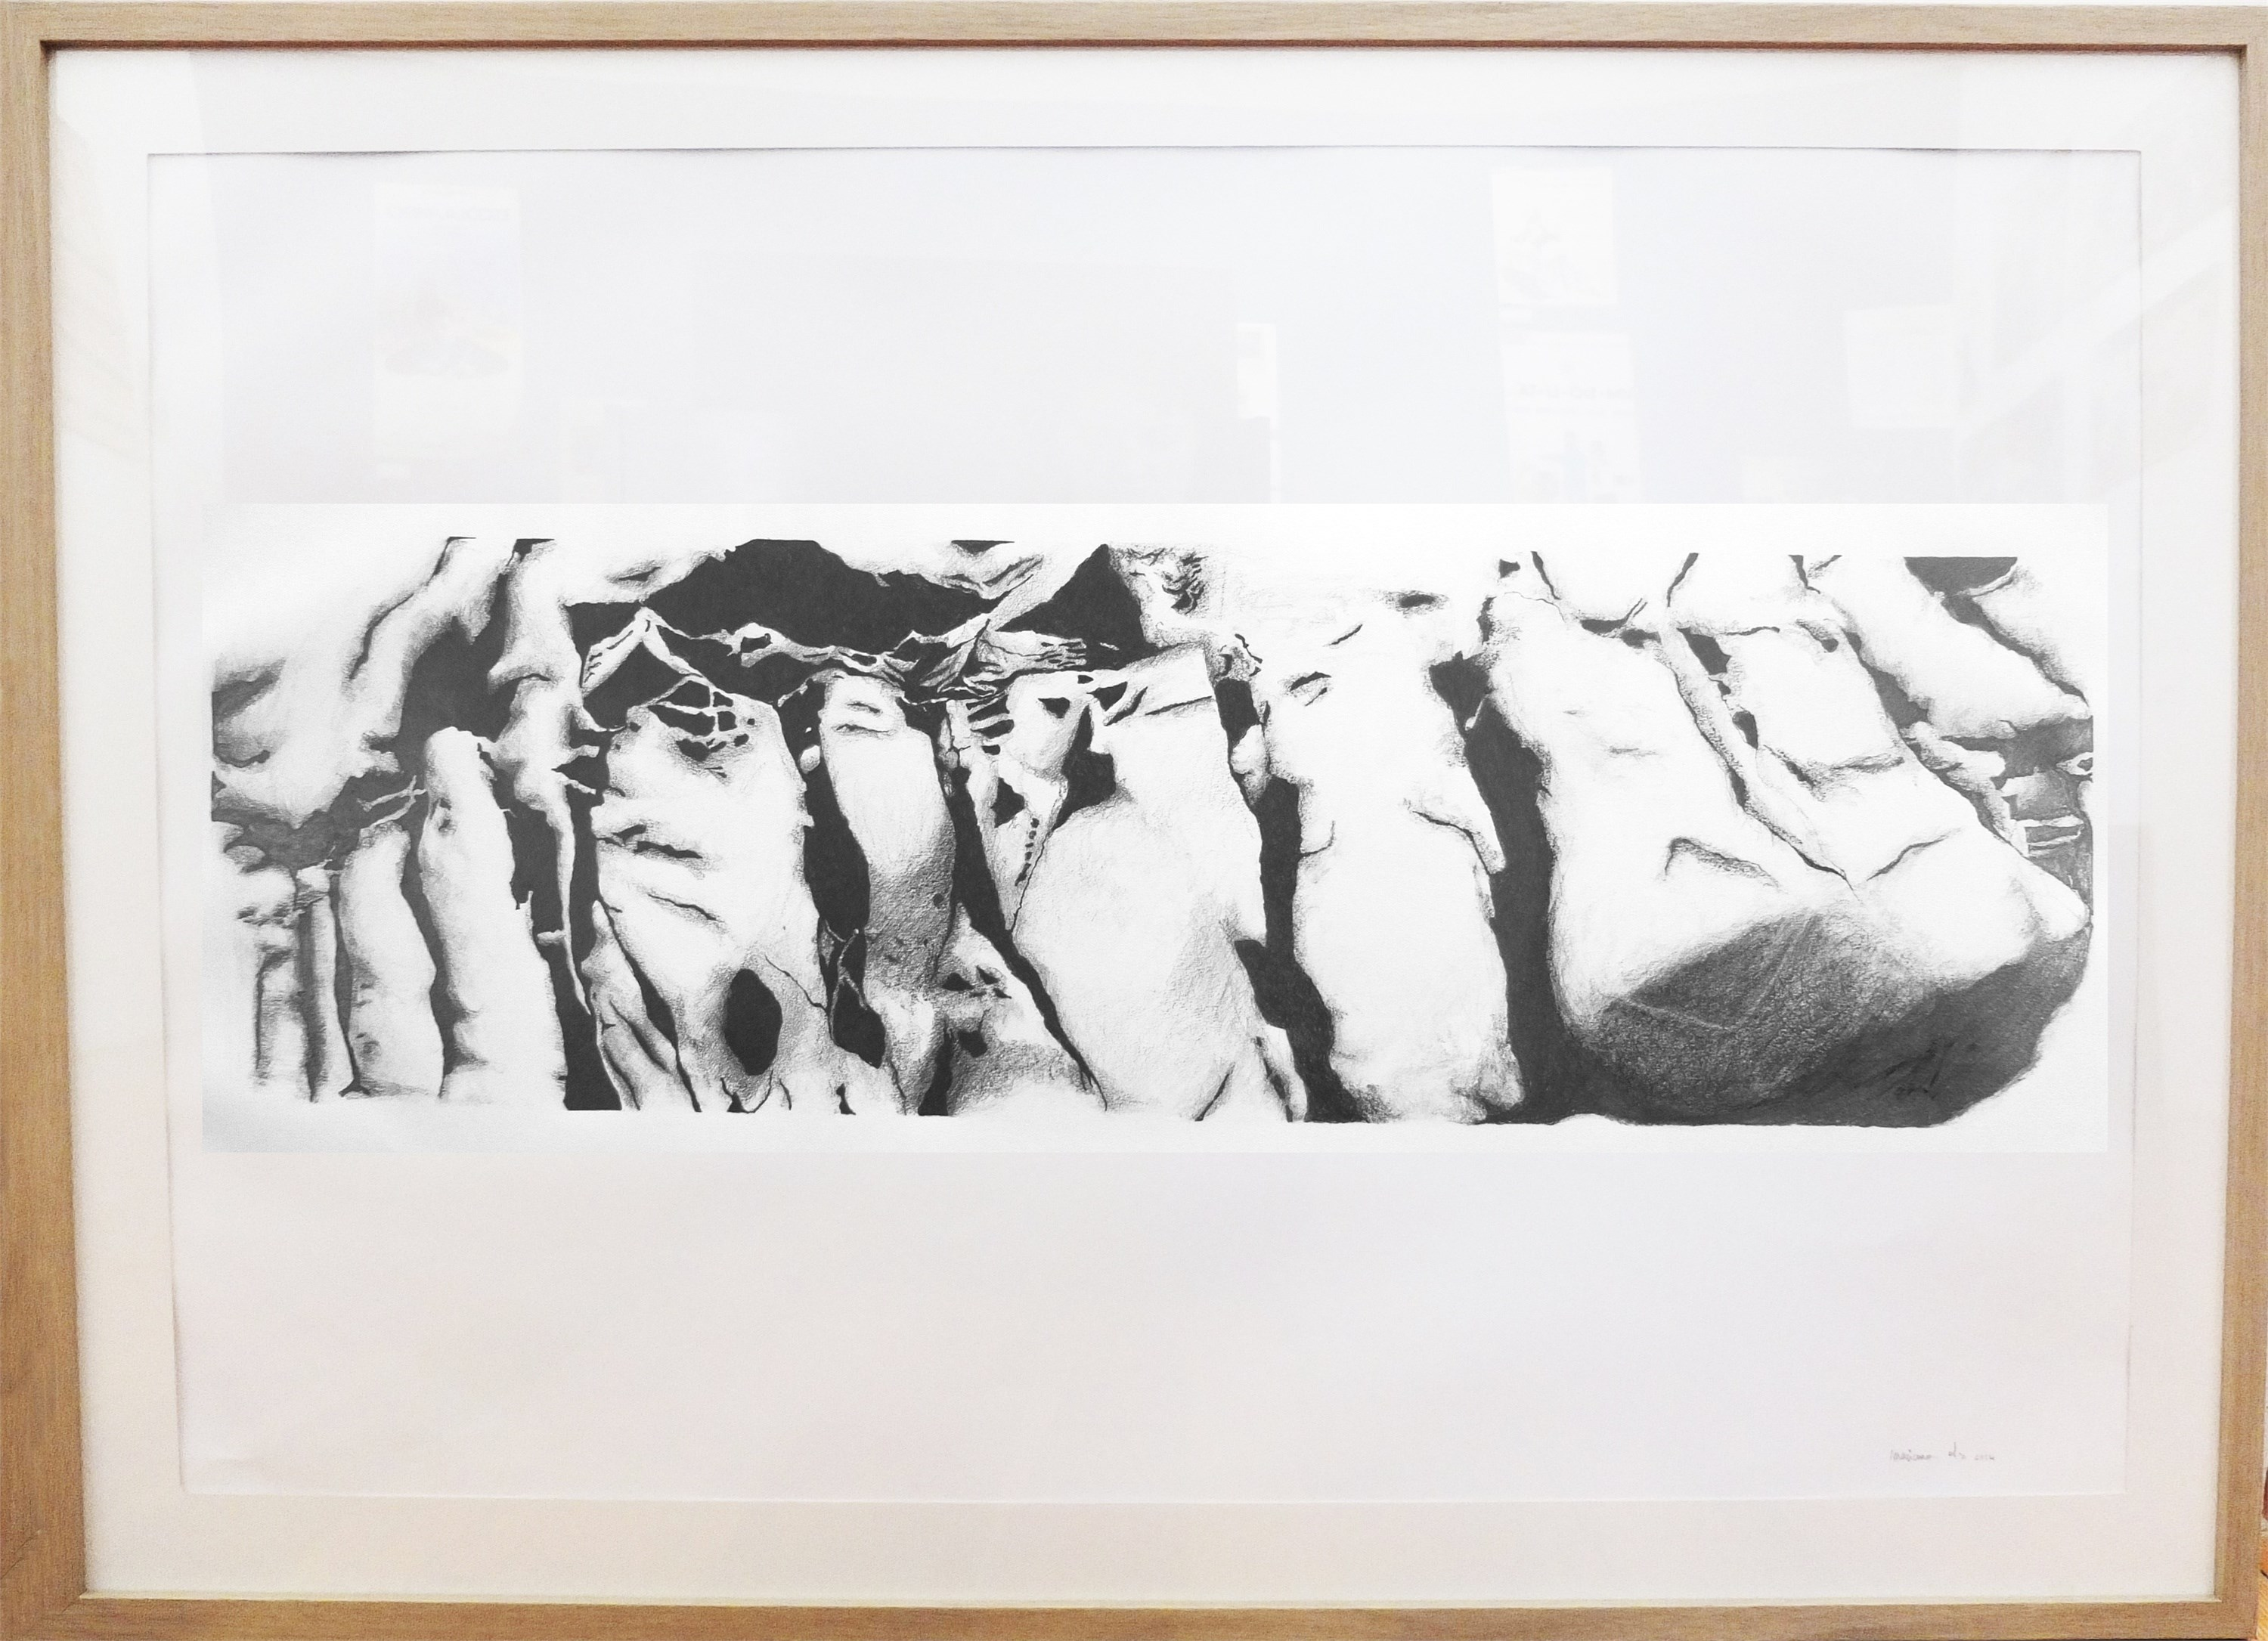 Rocha #1, original Big Charcoal Drawing and Illustration by Mariana Alves